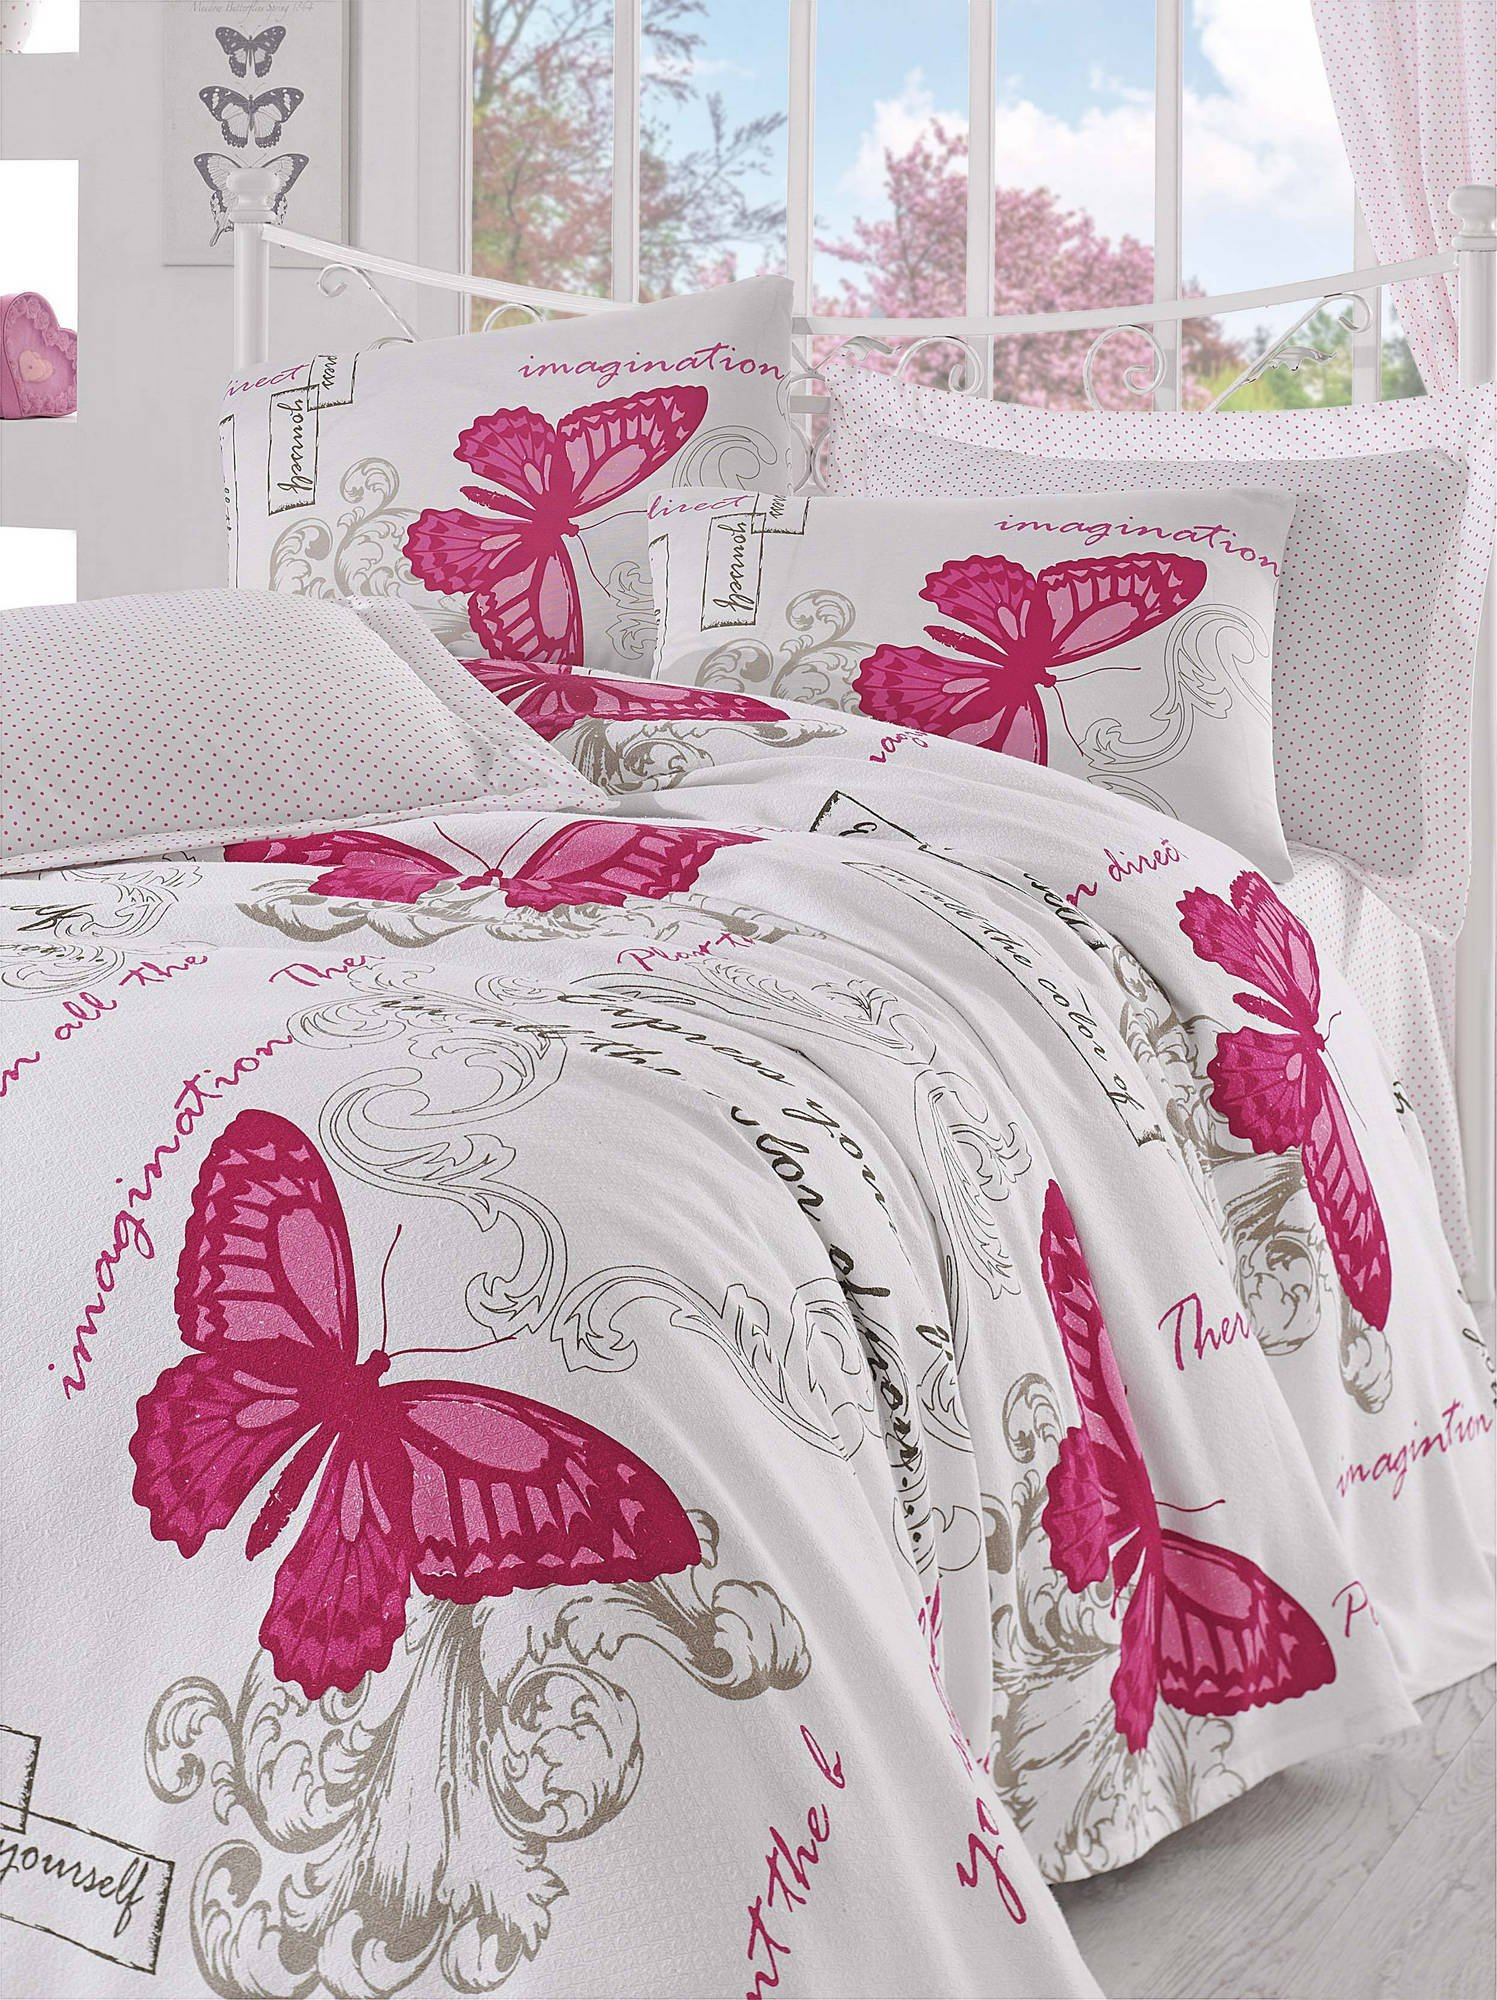 LaModaHome Luxury Soft Colored Bedroom Bedding 100% Cotton Single Coverlet (Pique) Thin Coverlet Summer/Article Butterfly Wing Bird Animal Motif Design/Single